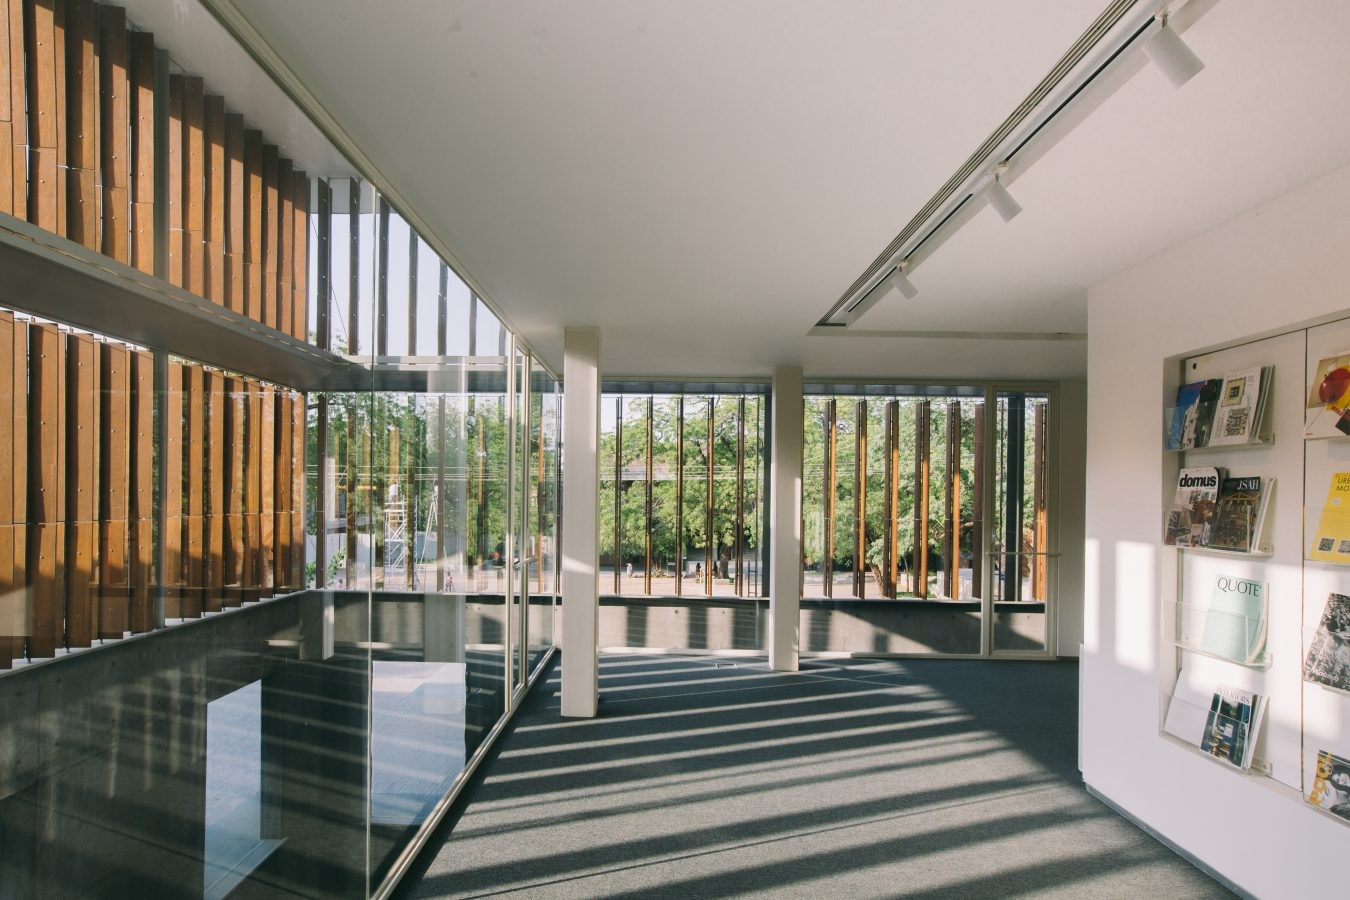 The CEPT University Library, Ahmedabad by Rahul Mehrotra: Spaces within the spaces - Sheet6